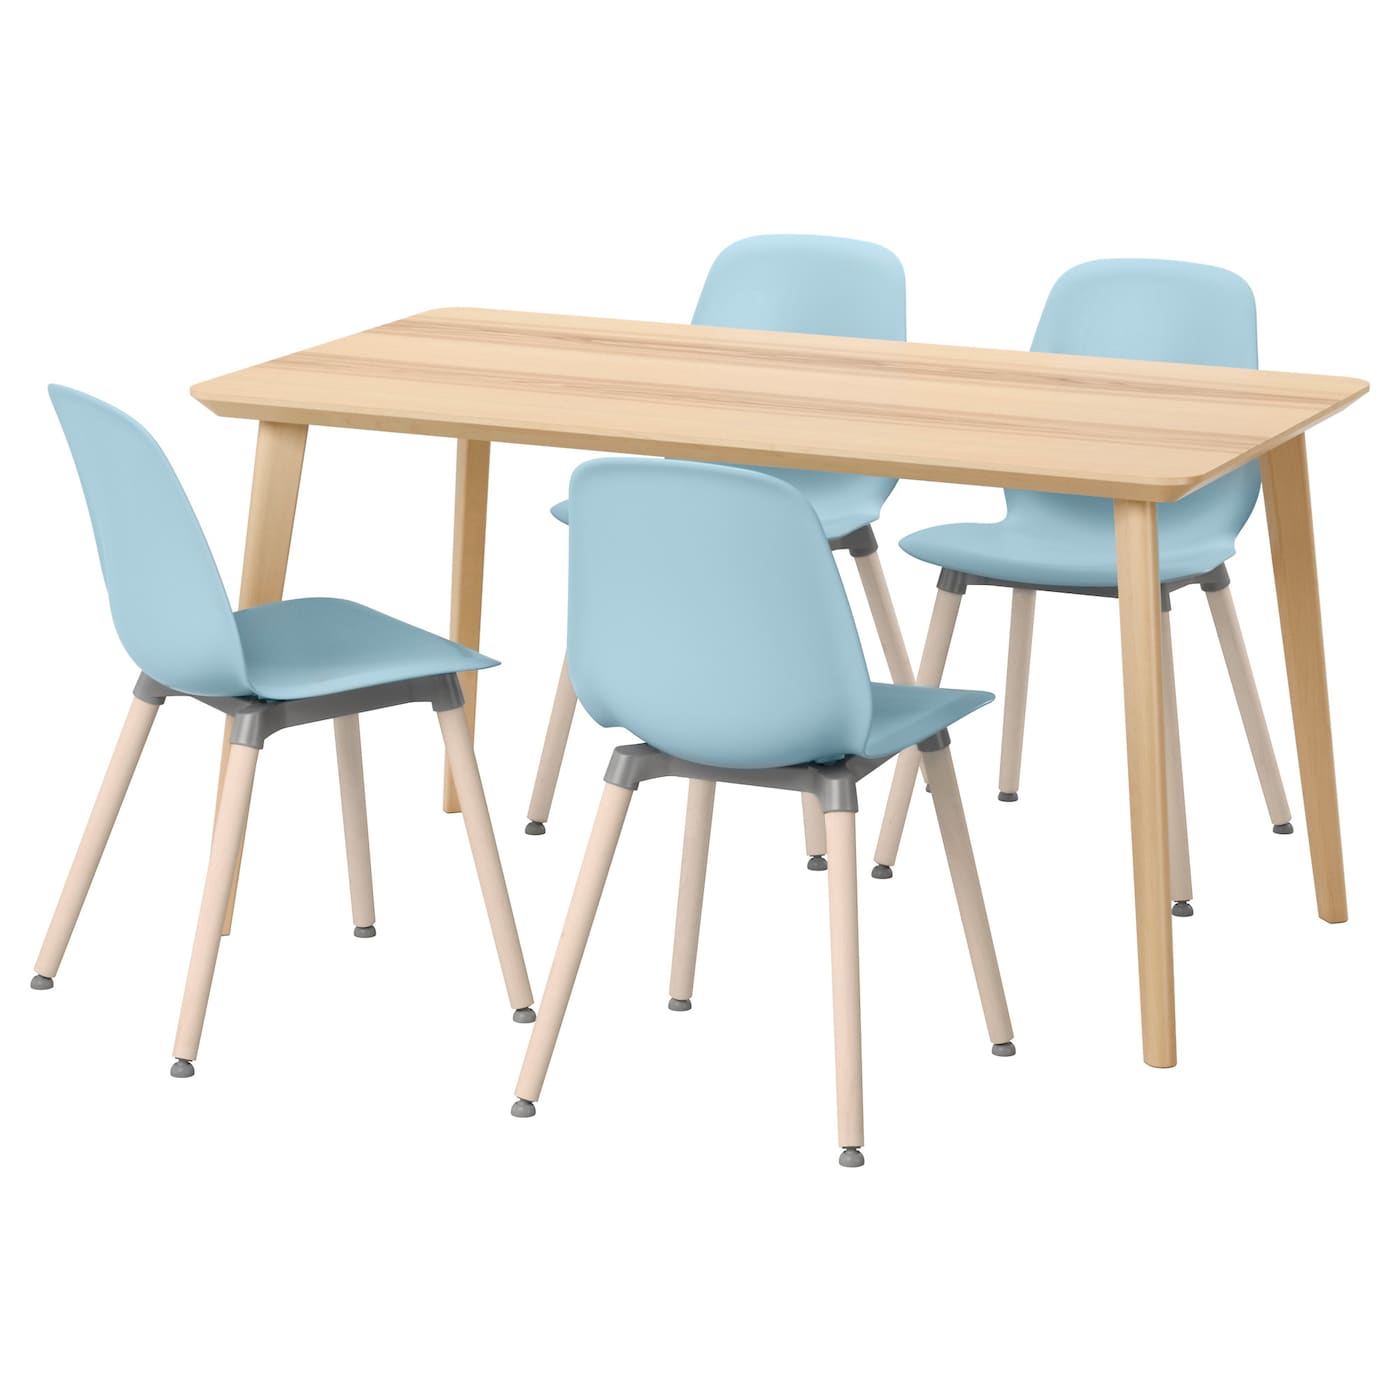 IKEA LEIFARNE/LISABO table and 4 chairs